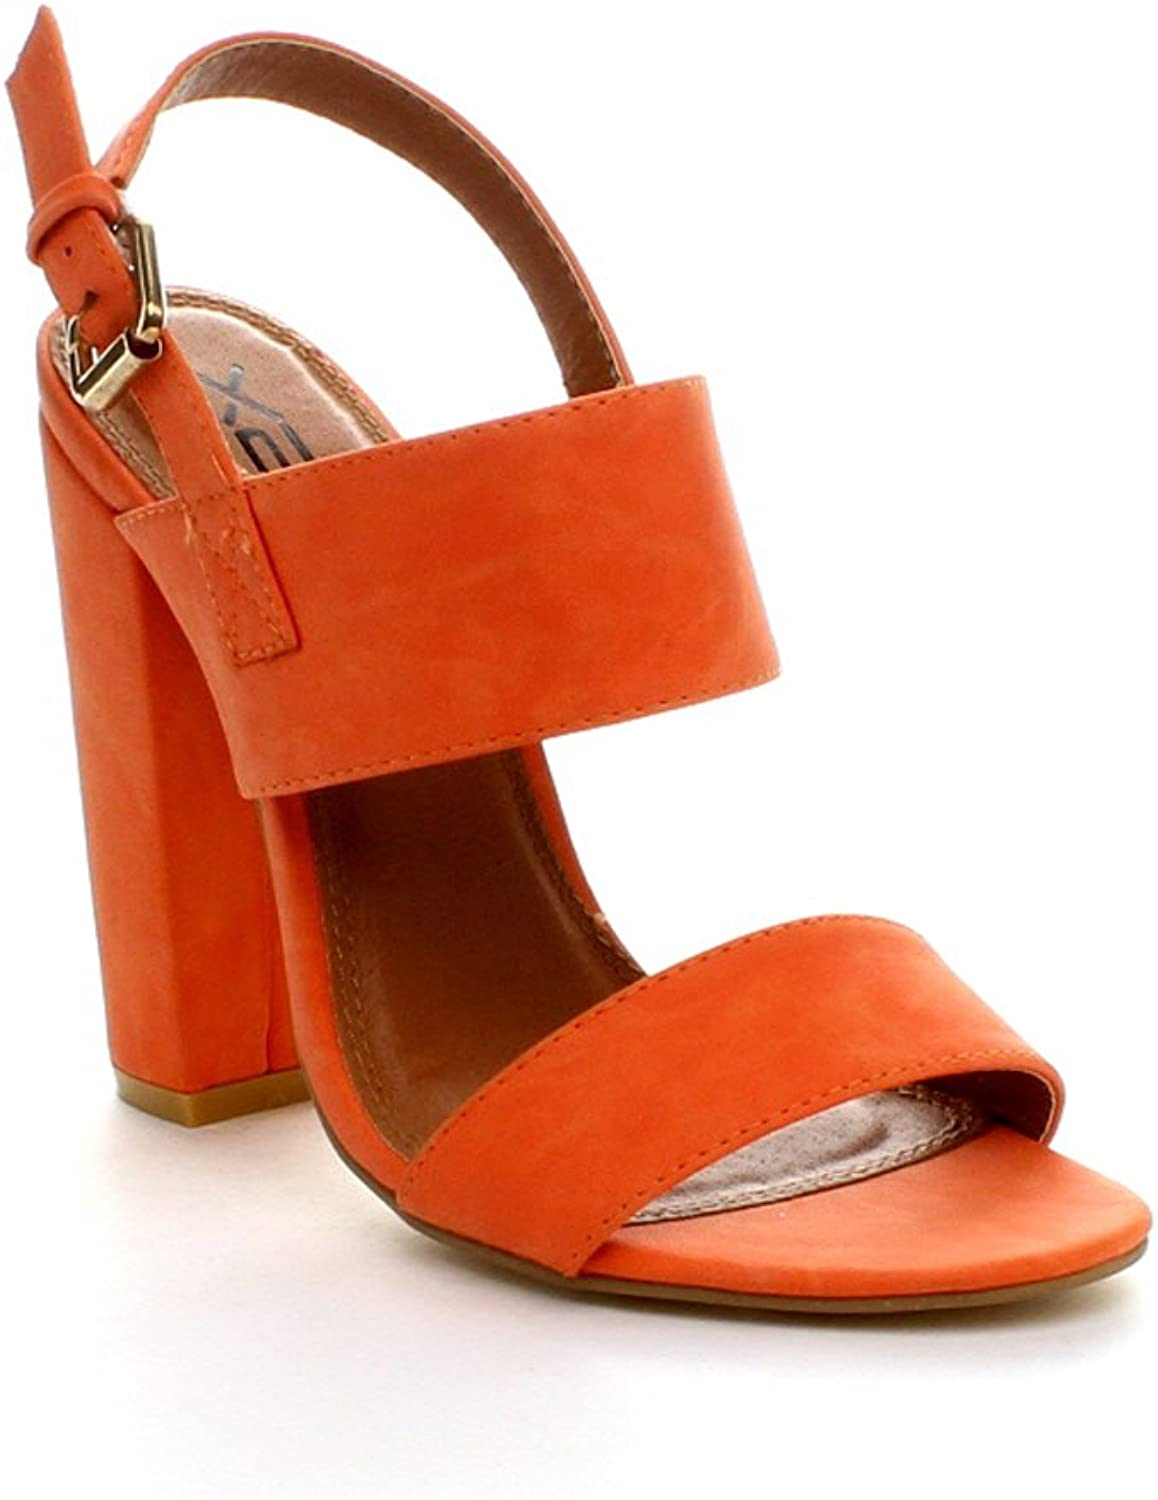 X2B Static Footwear Fay-1 Womens Round Toe Buckle Ankle Strap Chunky Heel Dress Sandals,orange,5.5